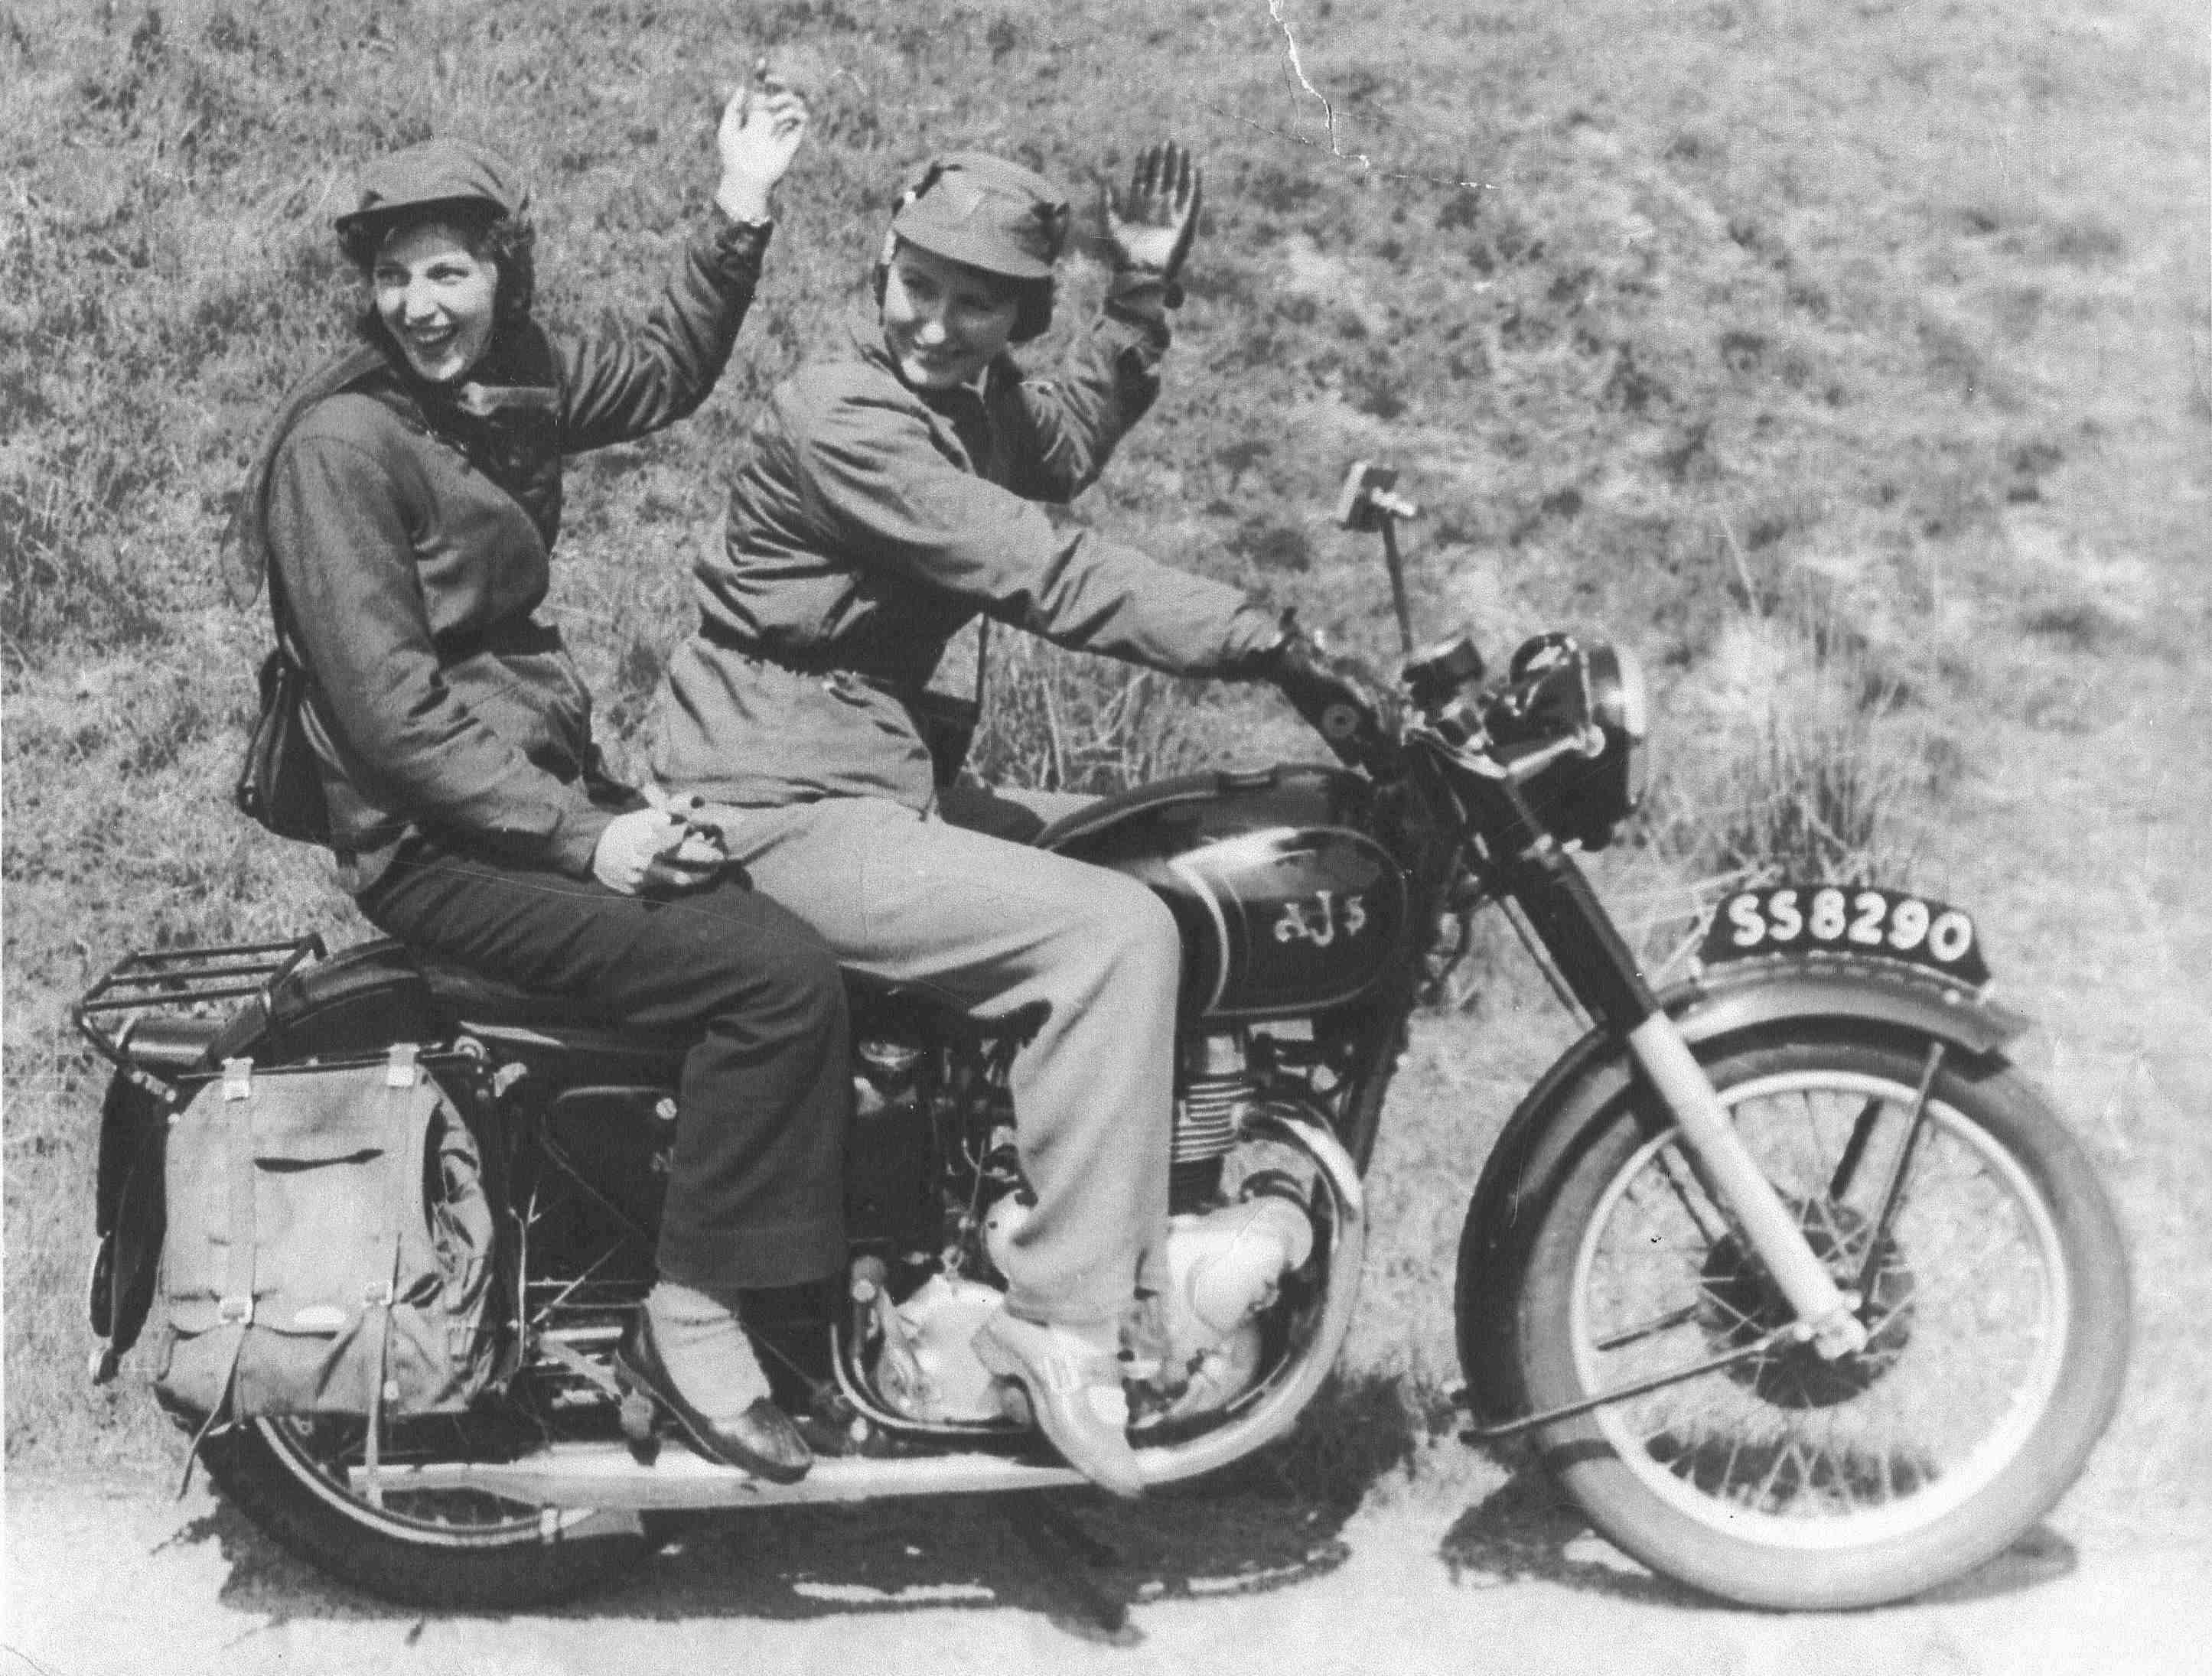 Two Women On Motorbike 1960s